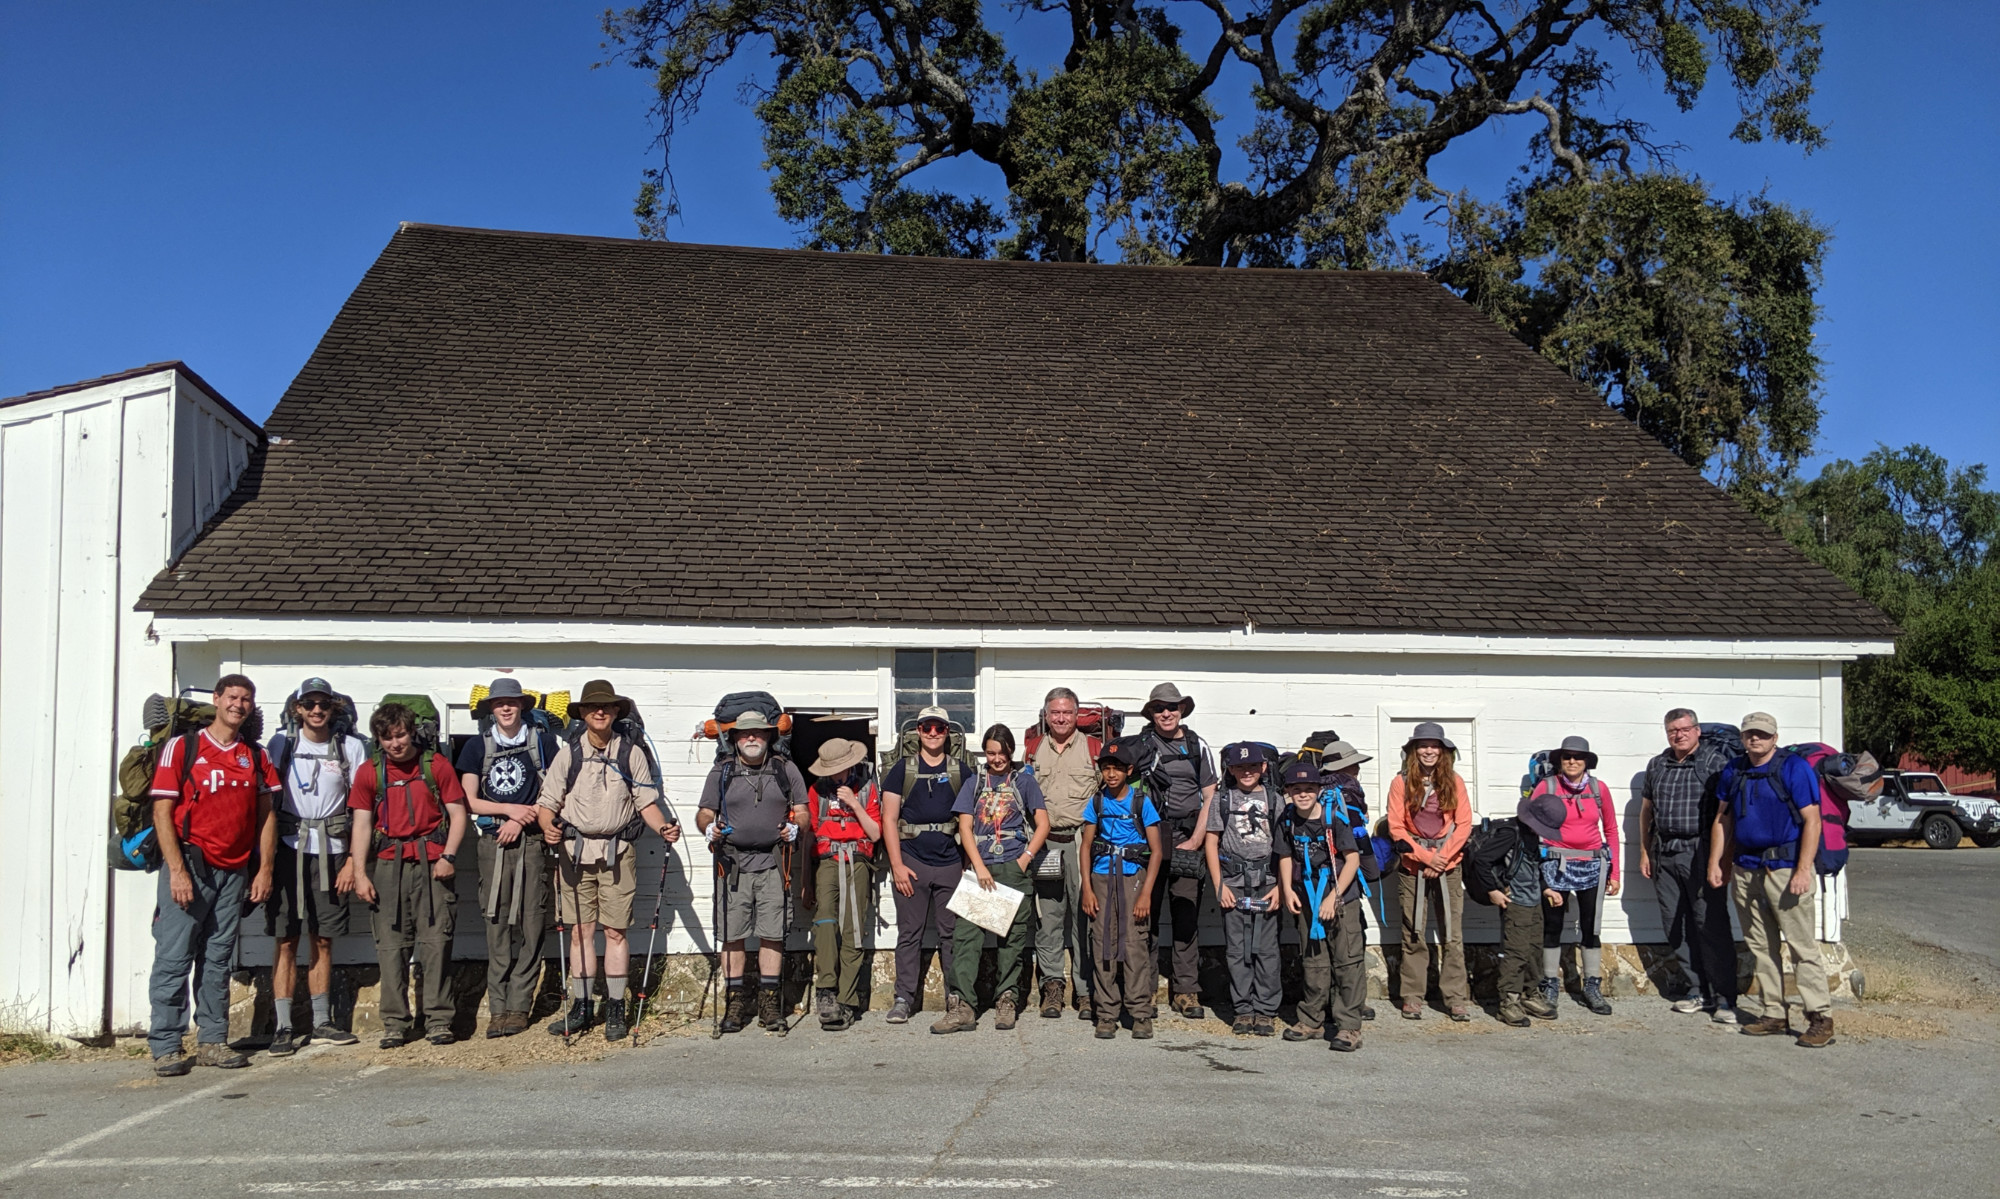 BSA Troop 260 - San Jose